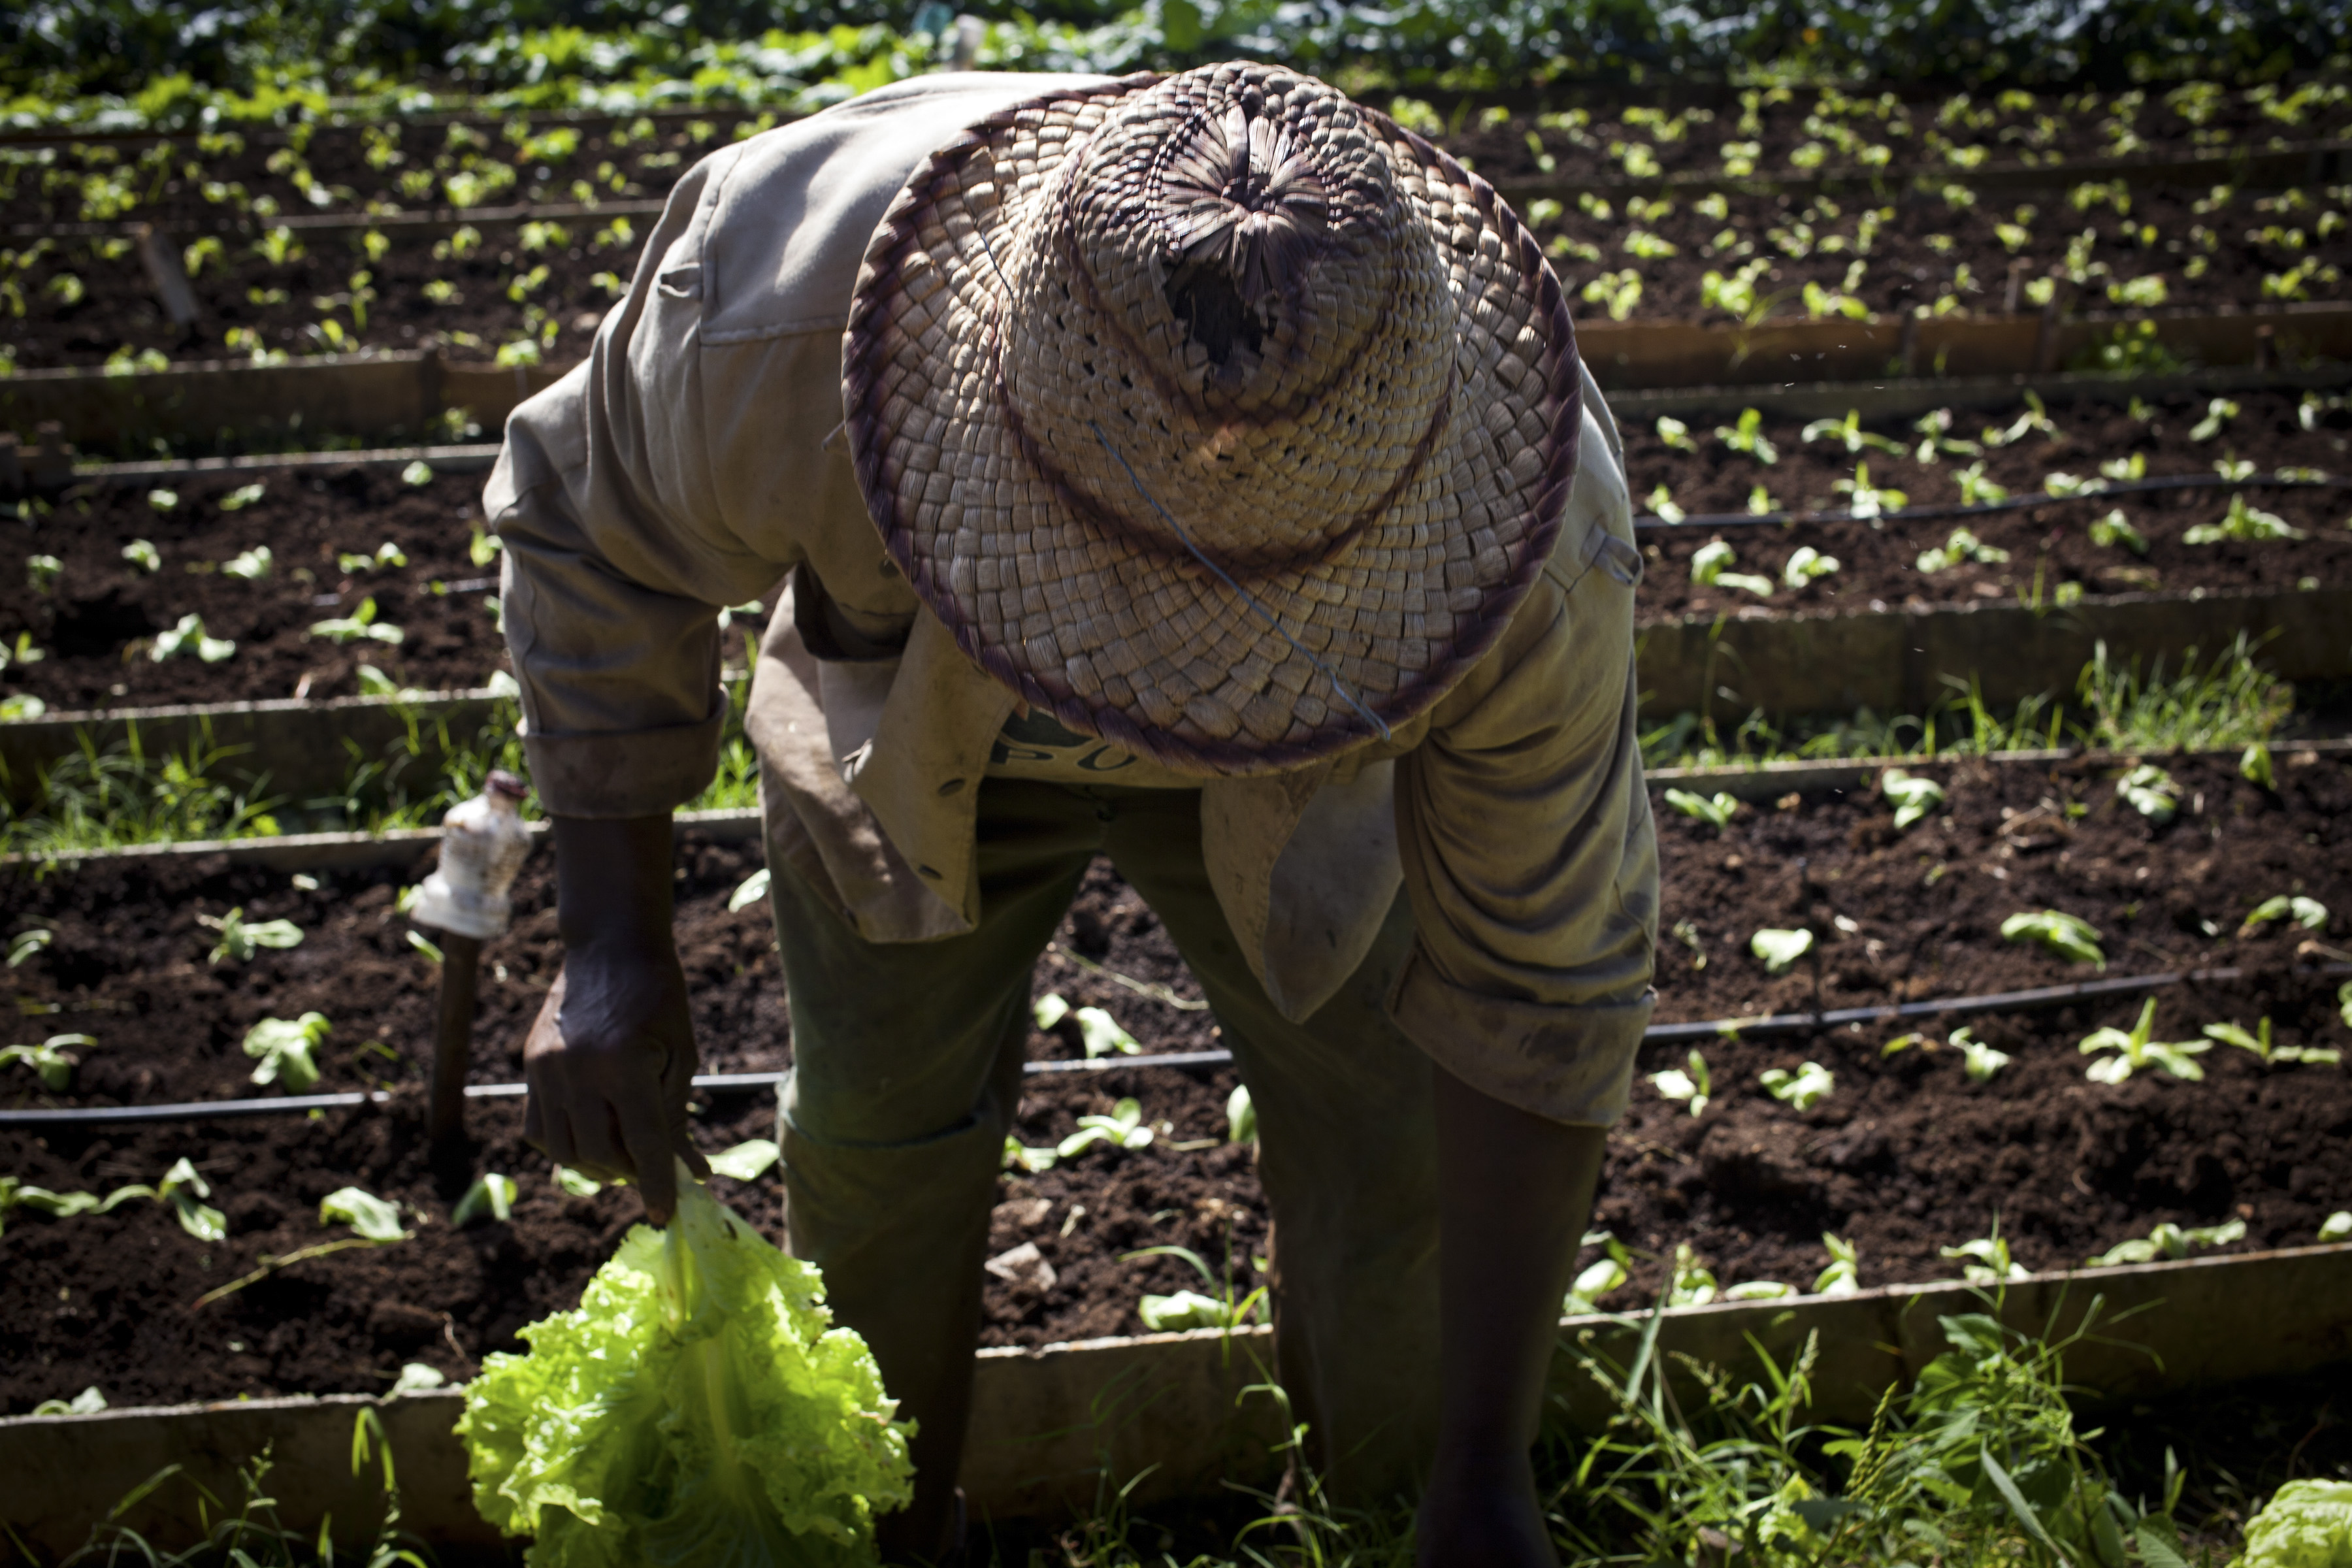 Cuba Aims for More Foreign Investment In Agriculture Sector